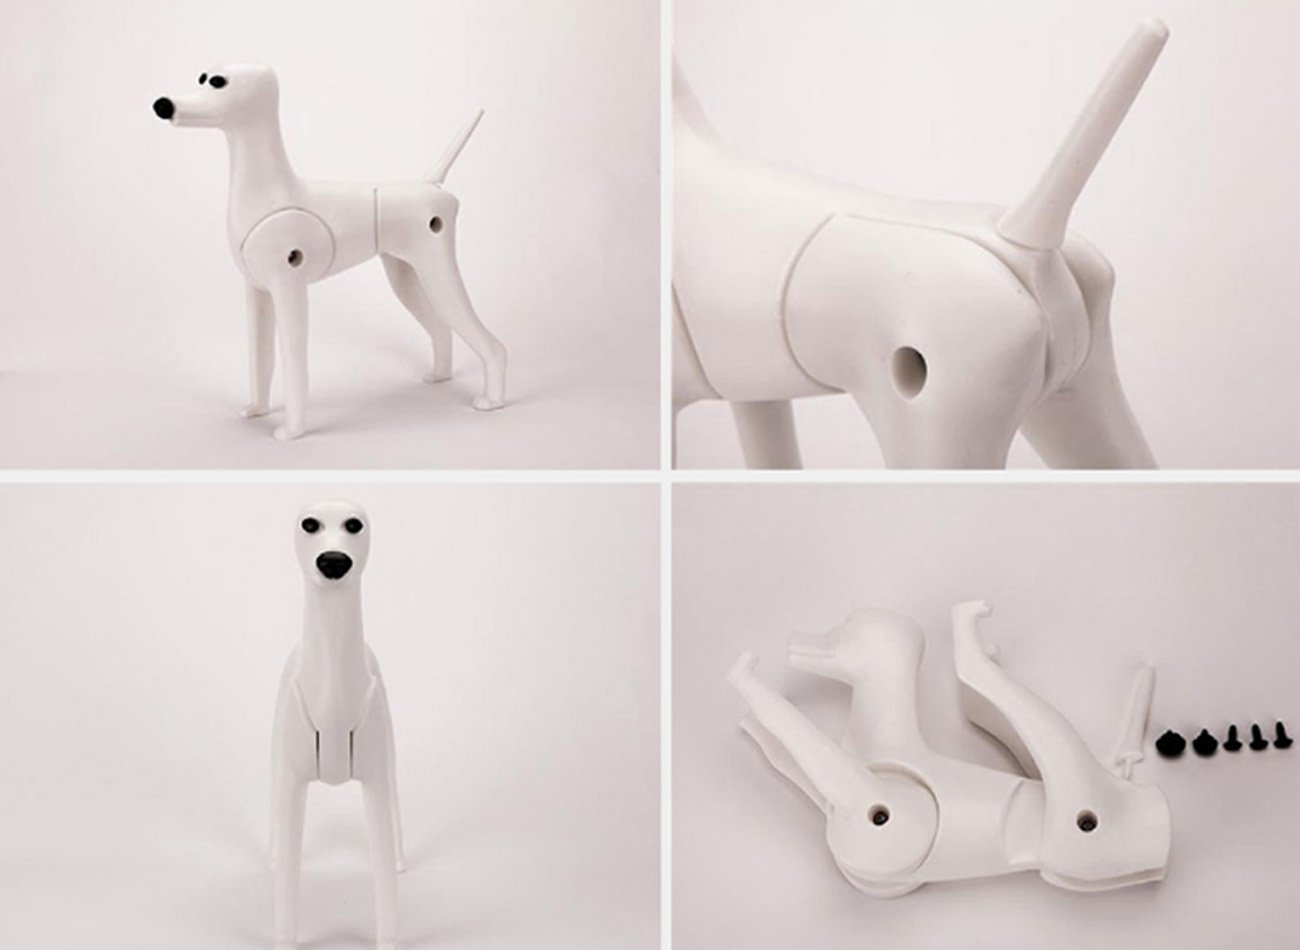 D-Wig Model Dog Only Grooming Practice White Dog Mannequin for Dog Groomers Reinforced Plastic